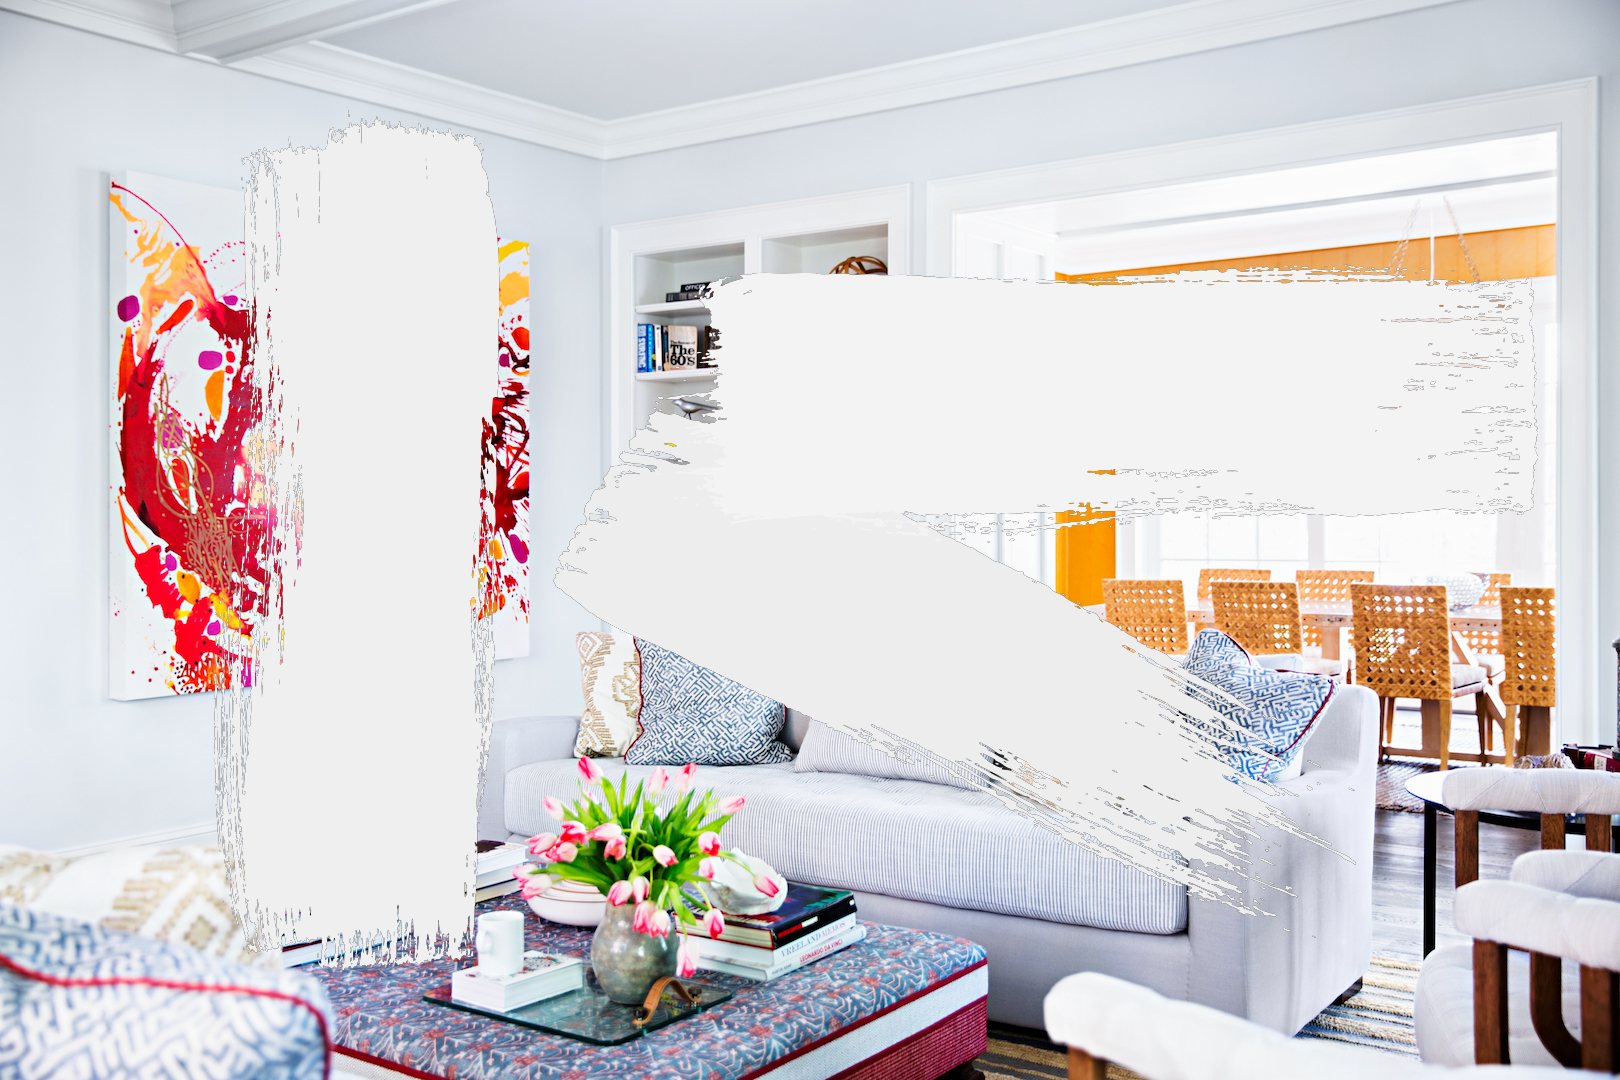 21 Best White Paint Colors For Every Room According To Designers